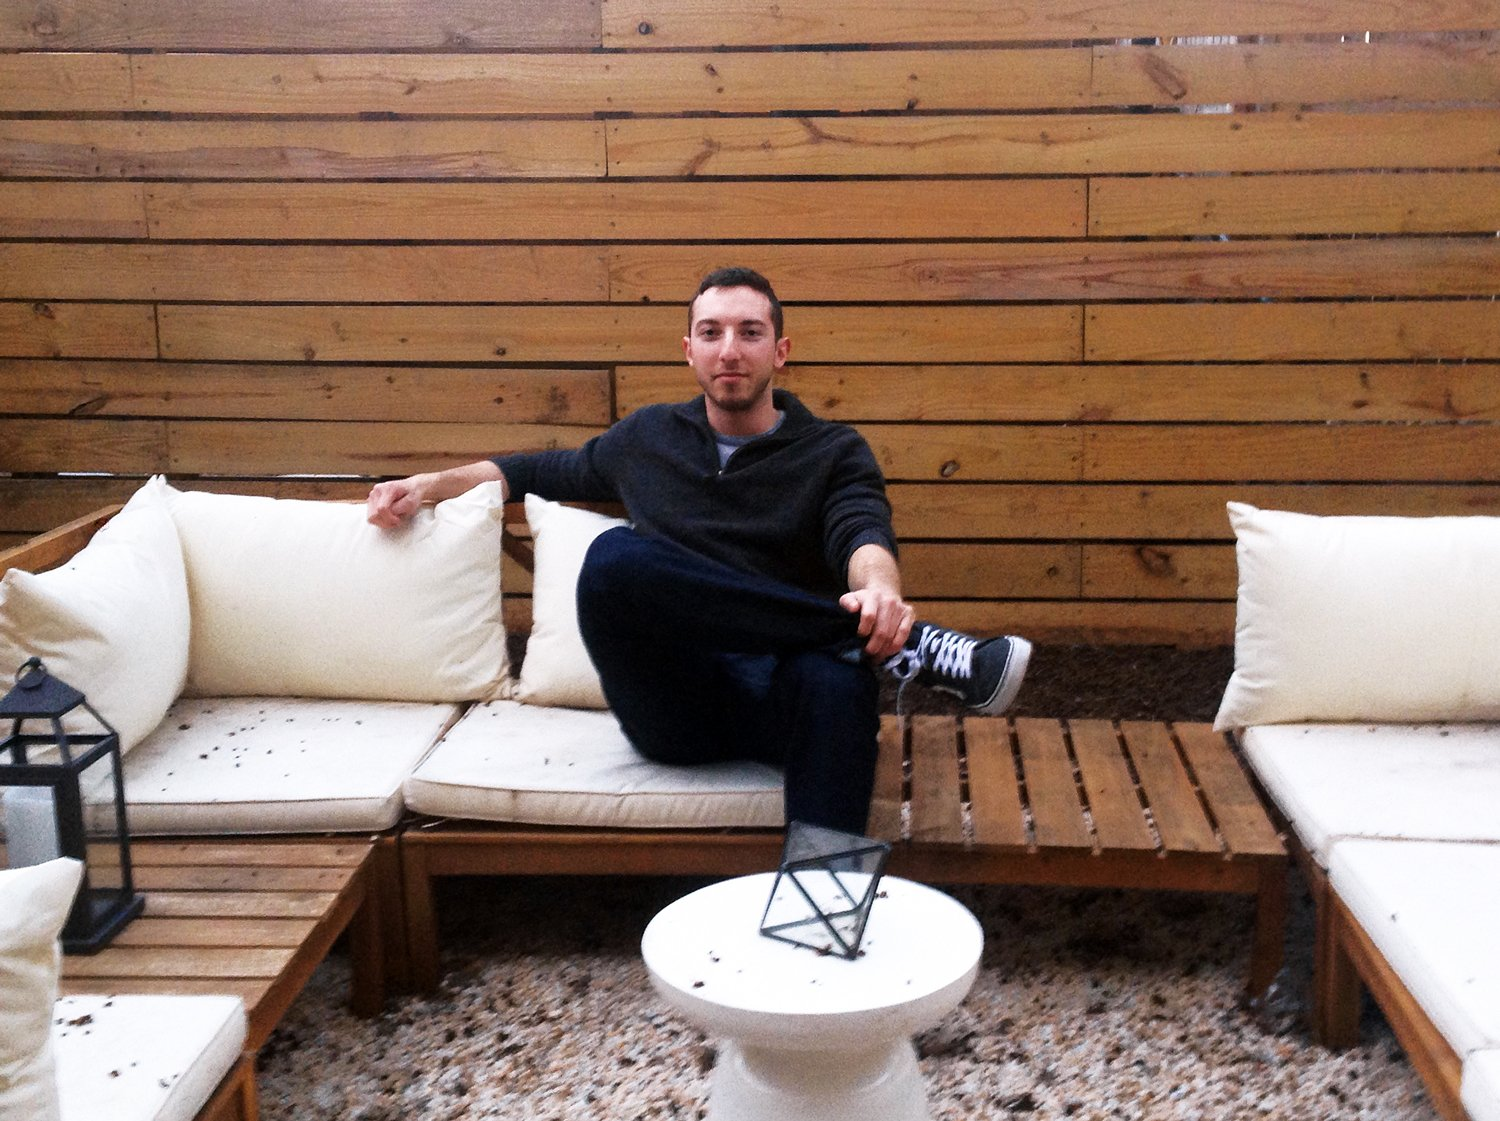 Adam Testa, common crown heights, common co-living brooklyn